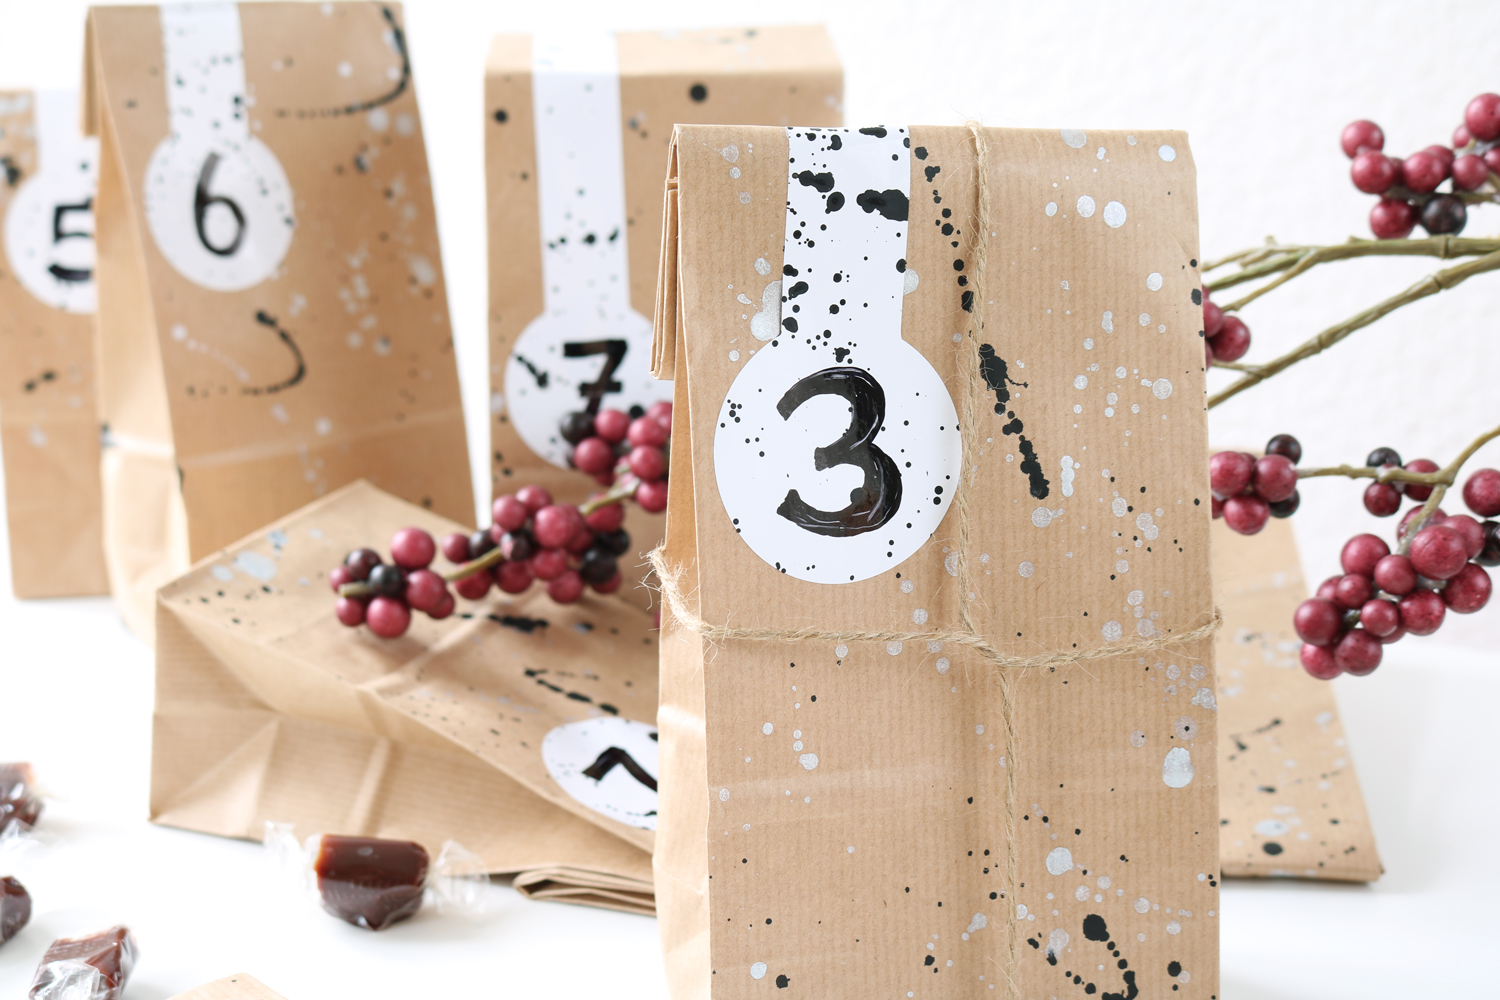 diy farbklecks adventskalender pretty nice. Black Bedroom Furniture Sets. Home Design Ideas